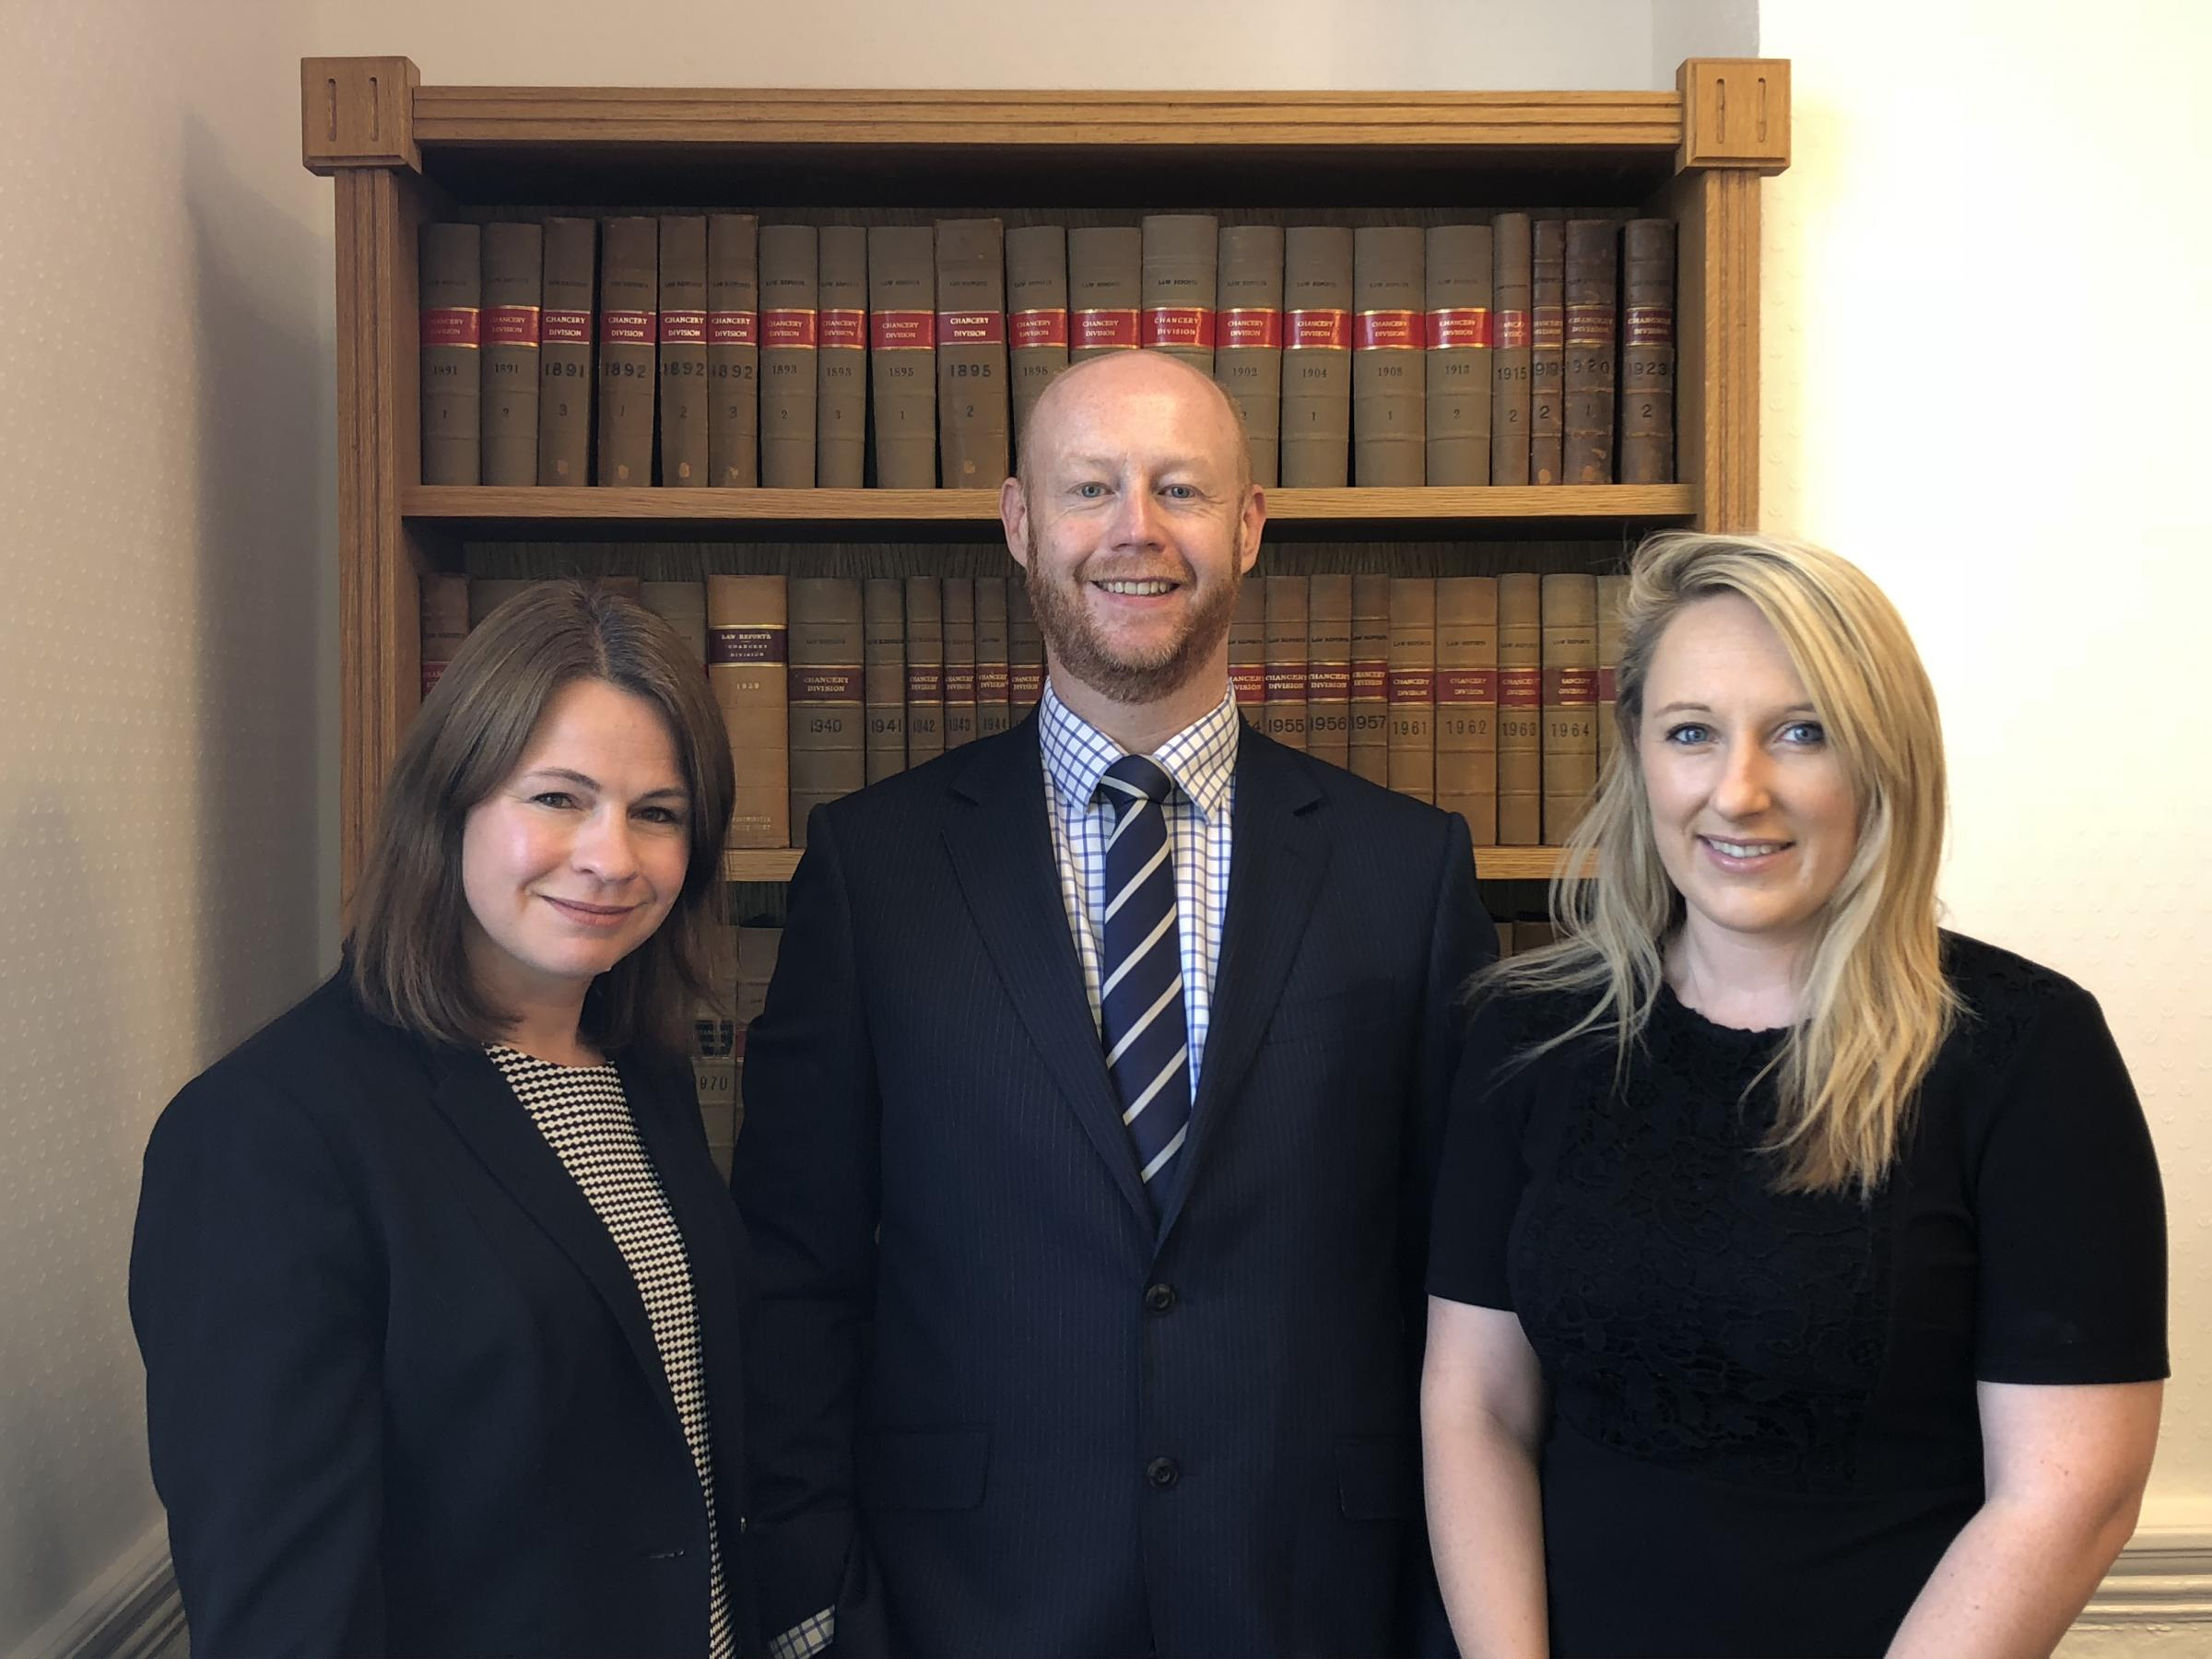 DC Employment Solicitors, from left, Caroline Oliver, Darren Tibble and Claire Helling